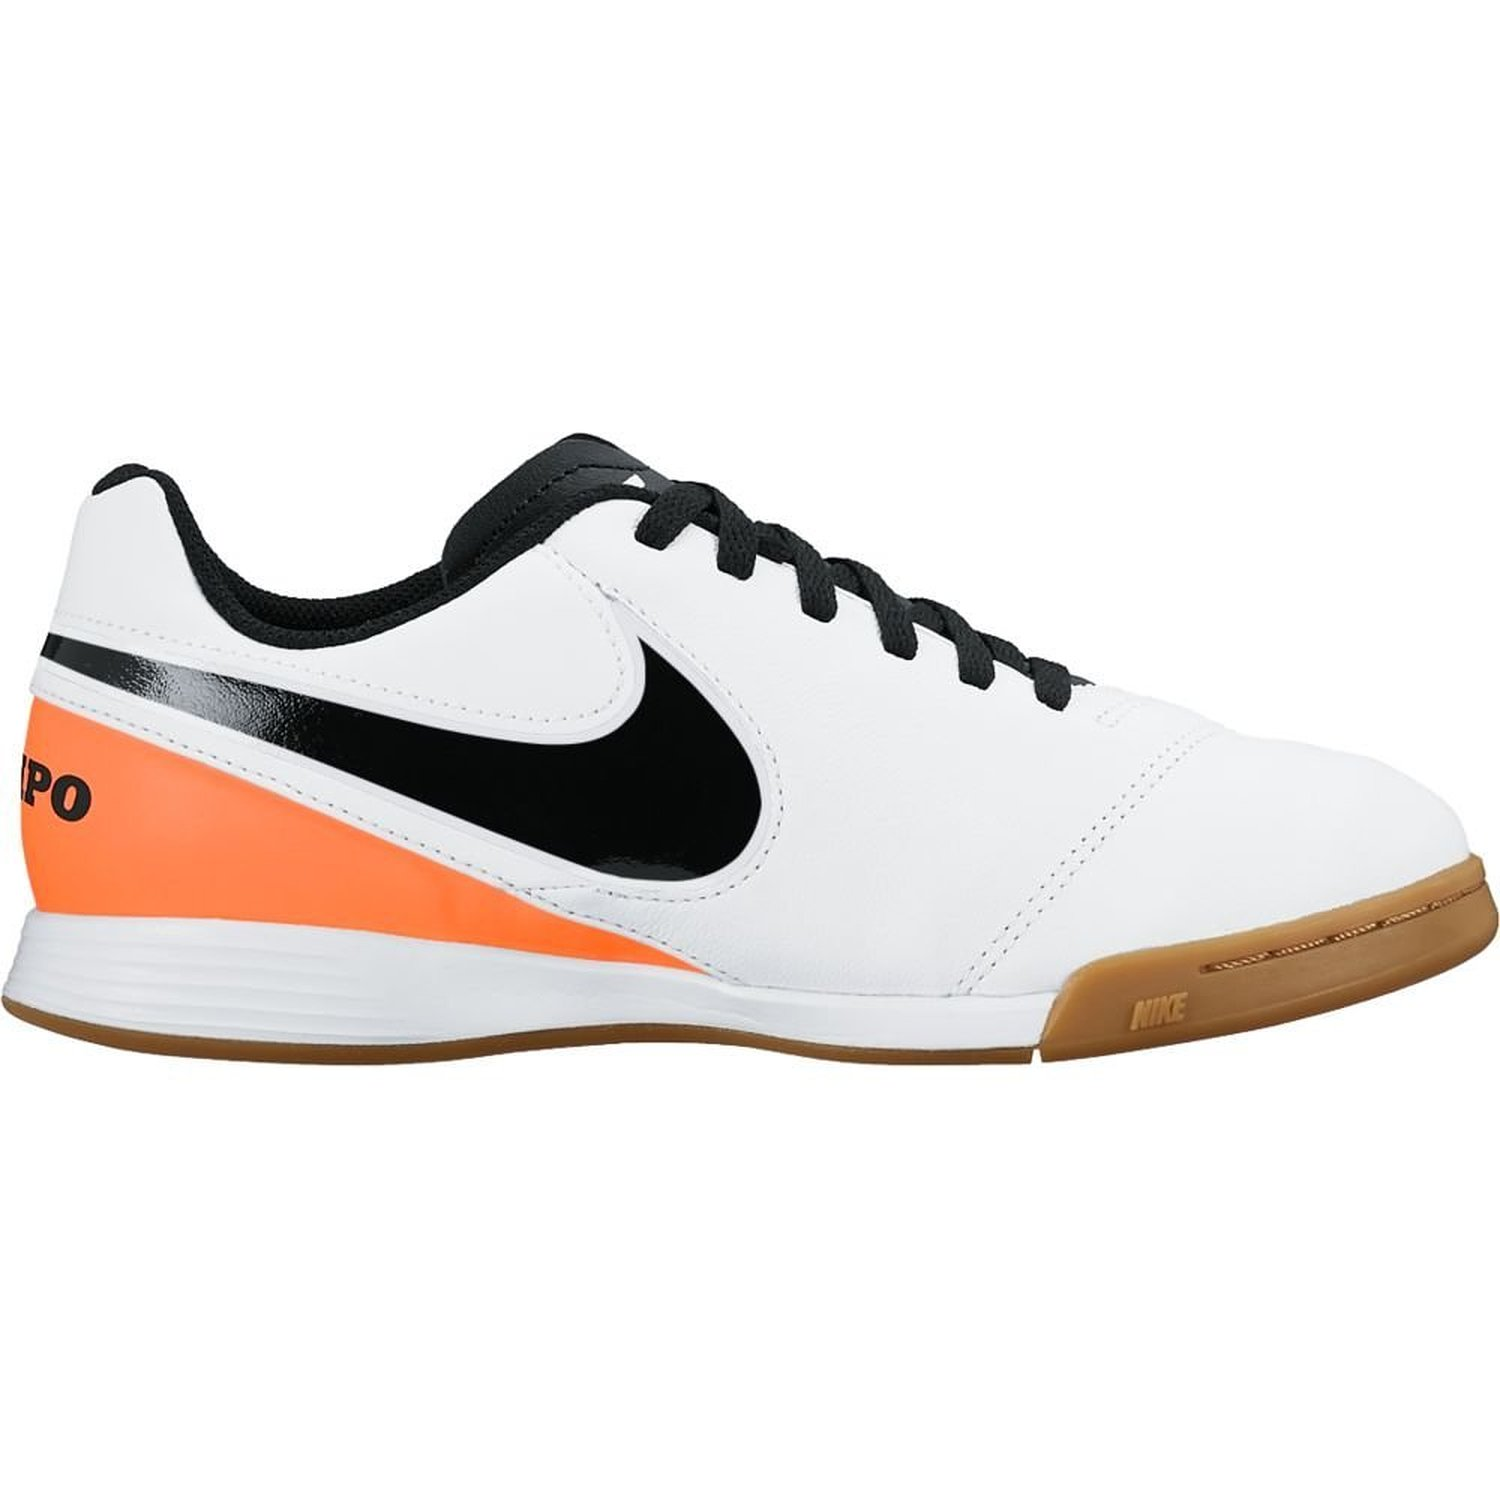 62deca49567 Get Quotations · Nike Youth Tiempo Legend VI Indoor Shoes  White  (2.5Y)